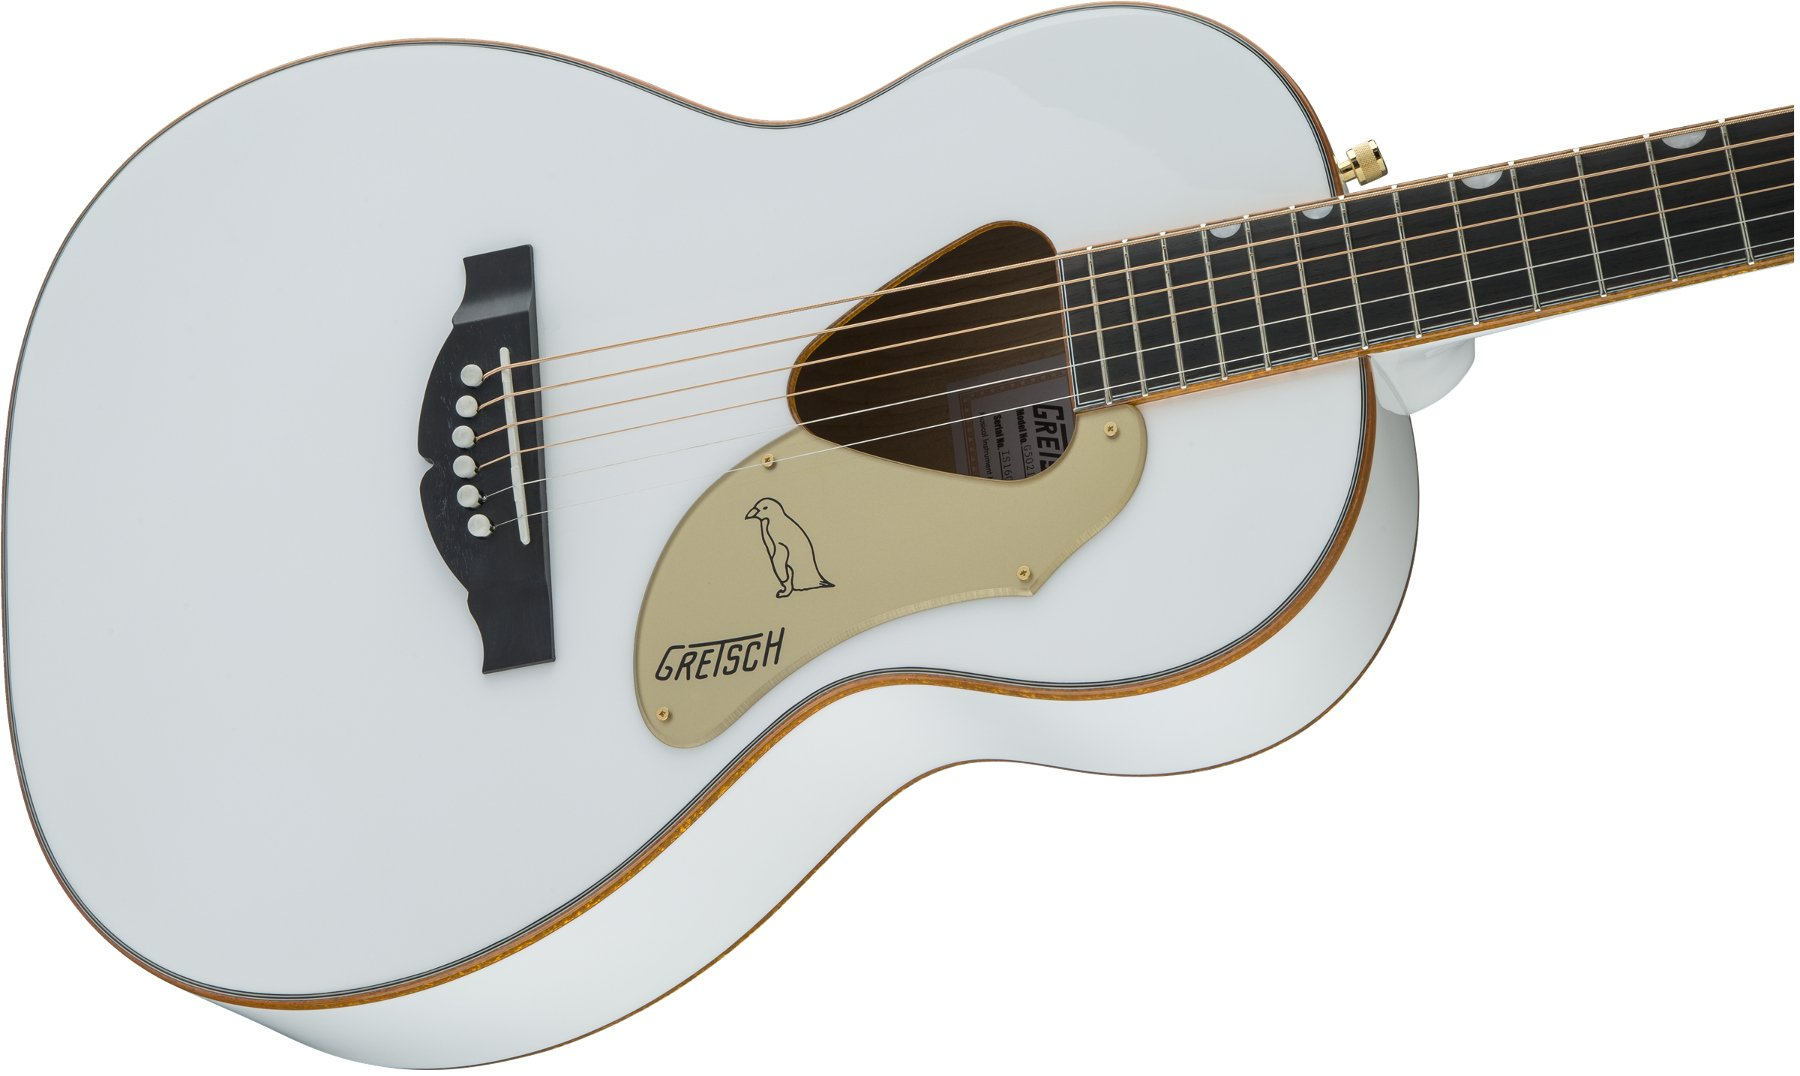 Gretsch Guitars G5021WPE Rancher Penguin Parlor Acoustic/Electric, Fishman Pickup System G5021WPE